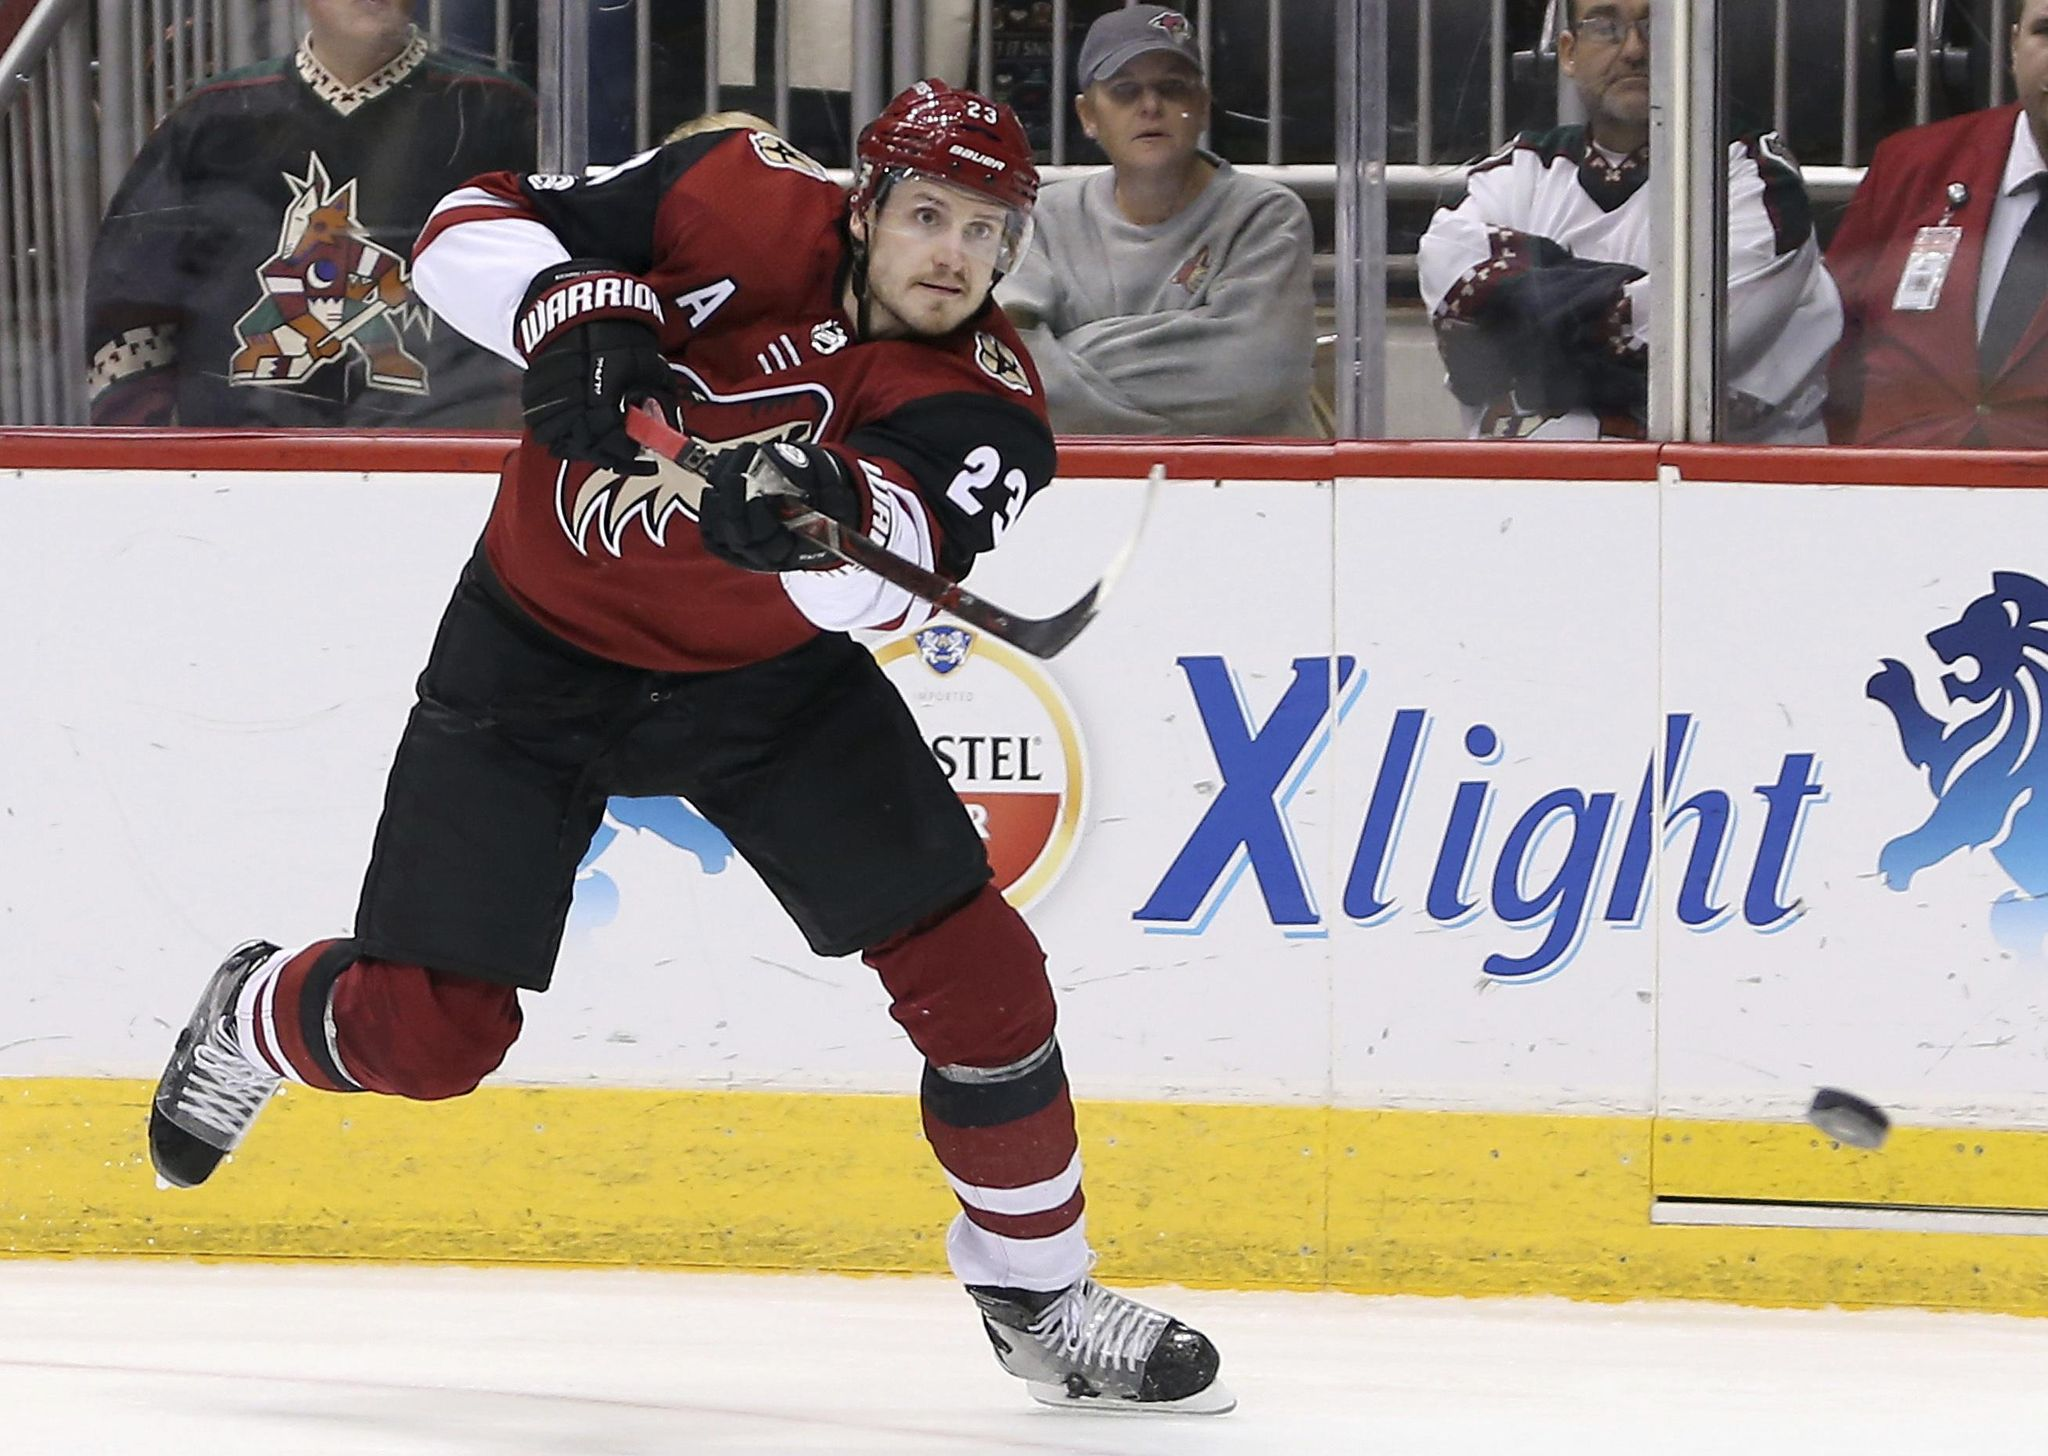 Coyotes_preview_hockey_00643_s2048x1456